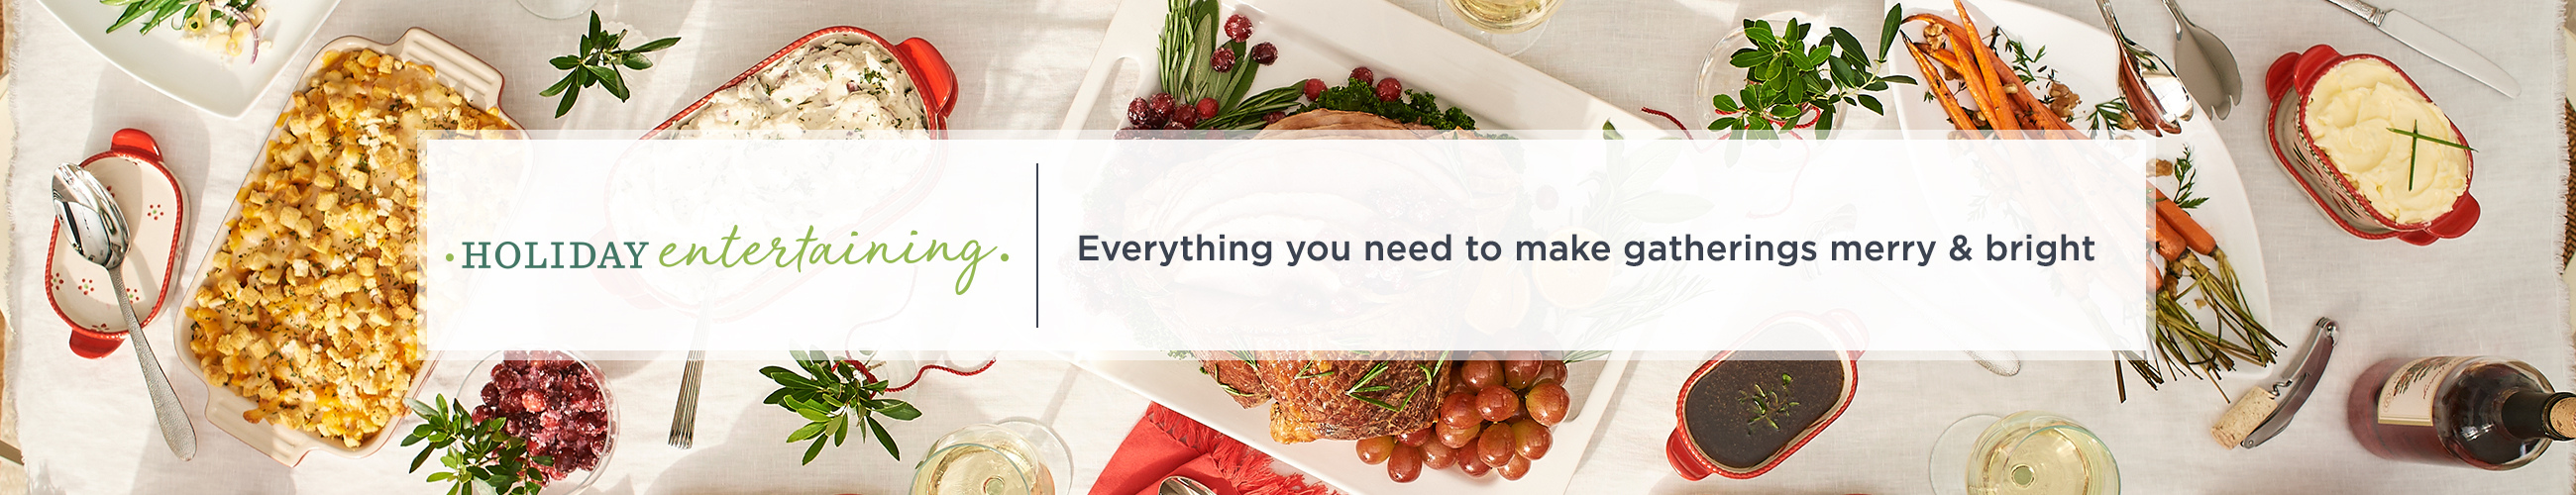 Holiday Entertaining - Everything you need to make gatherings merry & bright